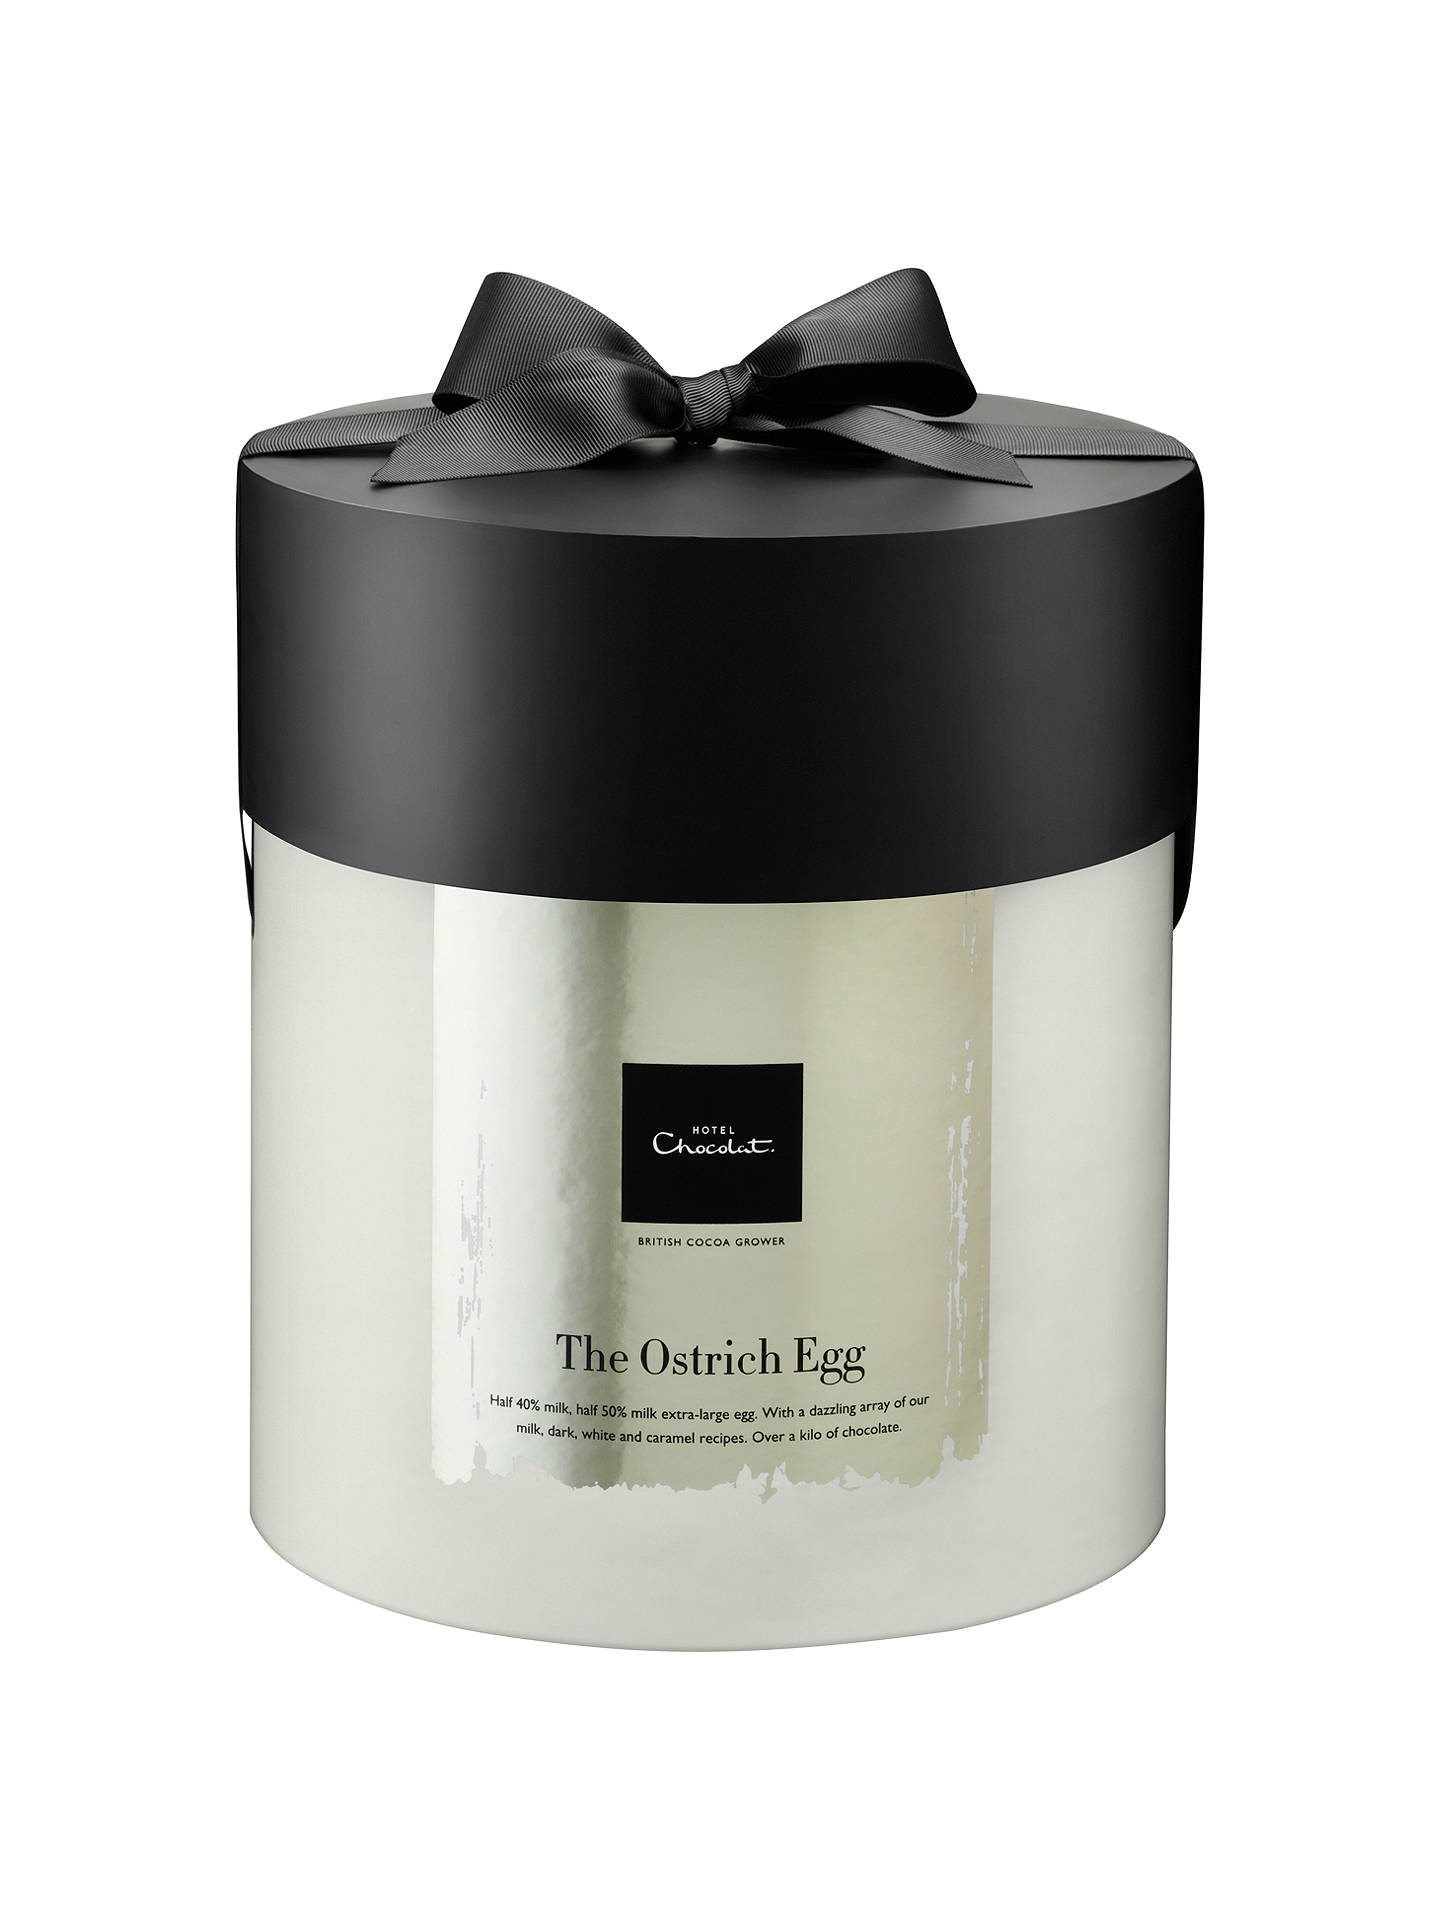 Buy Hotel Chocolat 'The Ostrich Egg' Milk Chocolate Easter Egg, 1.1kg Online at johnlewis.com